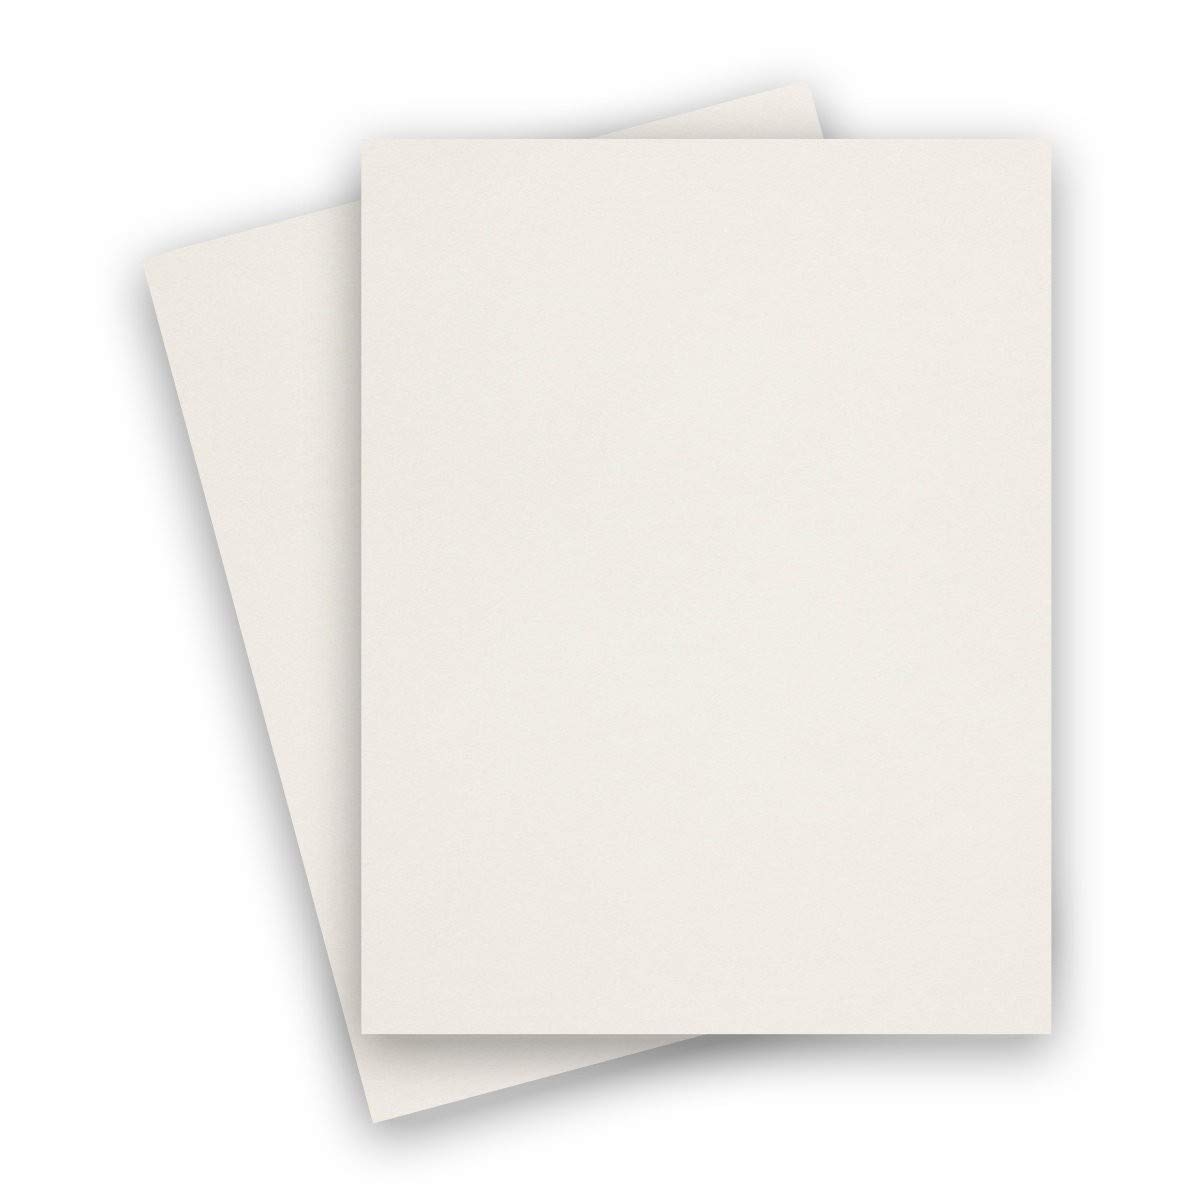 Cryogen White 8-1/2-x-11 Lightweight 32T Multi-use Paper 50-pk - PaperPapers 118 GSM (32/80lb Text) Letter Size Printer Friendly Paper - Professionals, Designers, Crafters and DIY Projects by Paper Papers